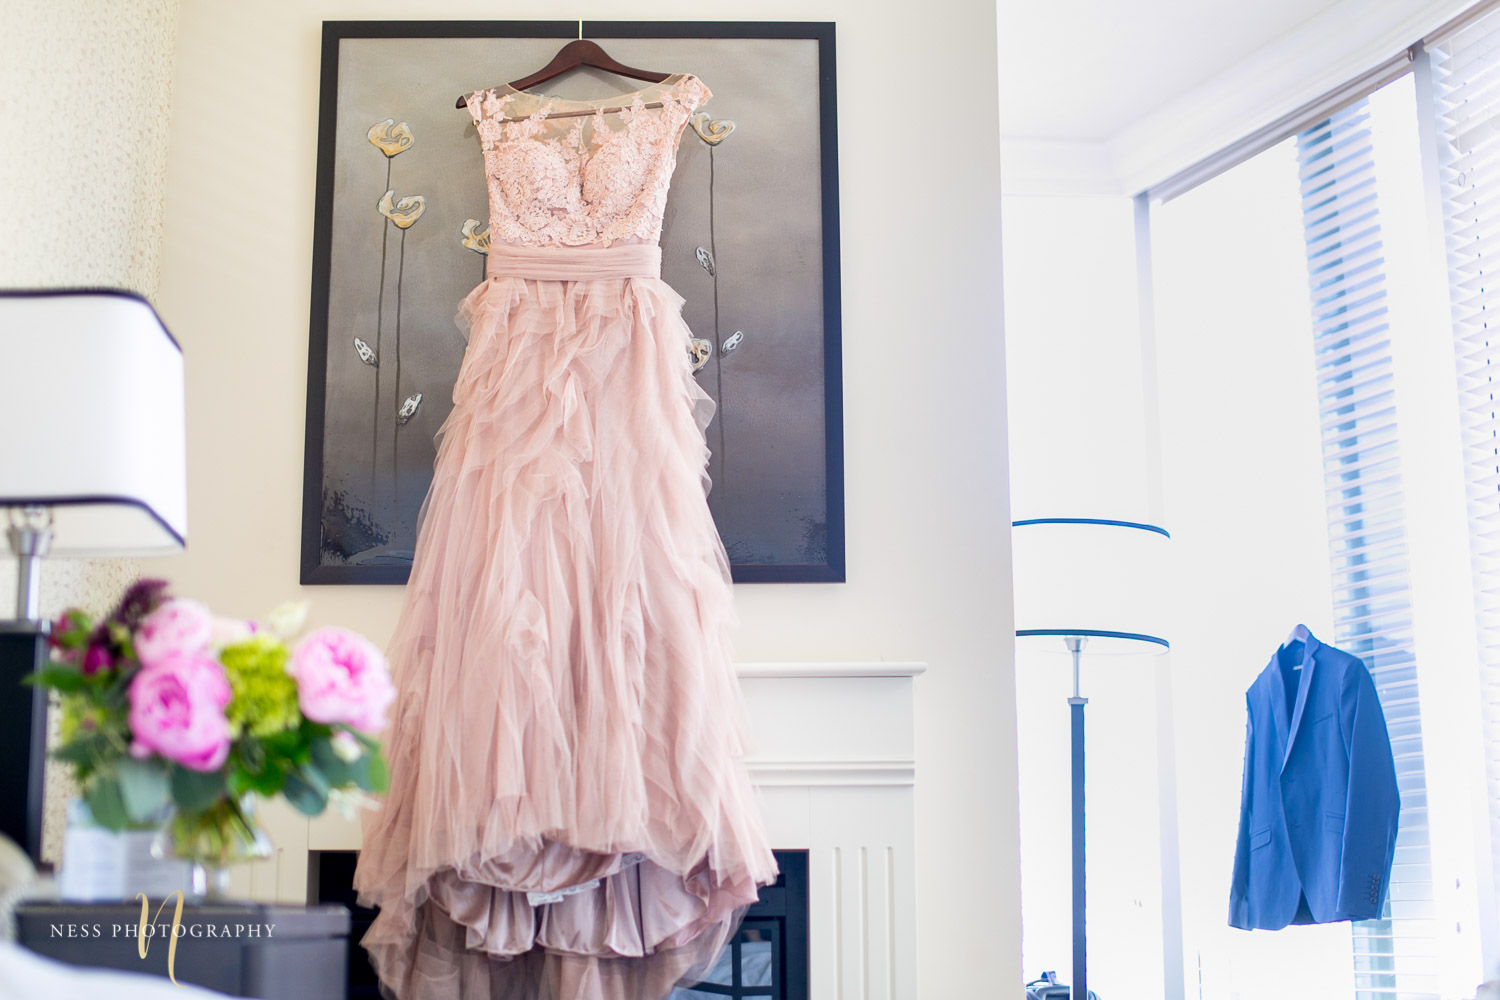 mmontreal elopement bride dress and groom jacket hanging side by side